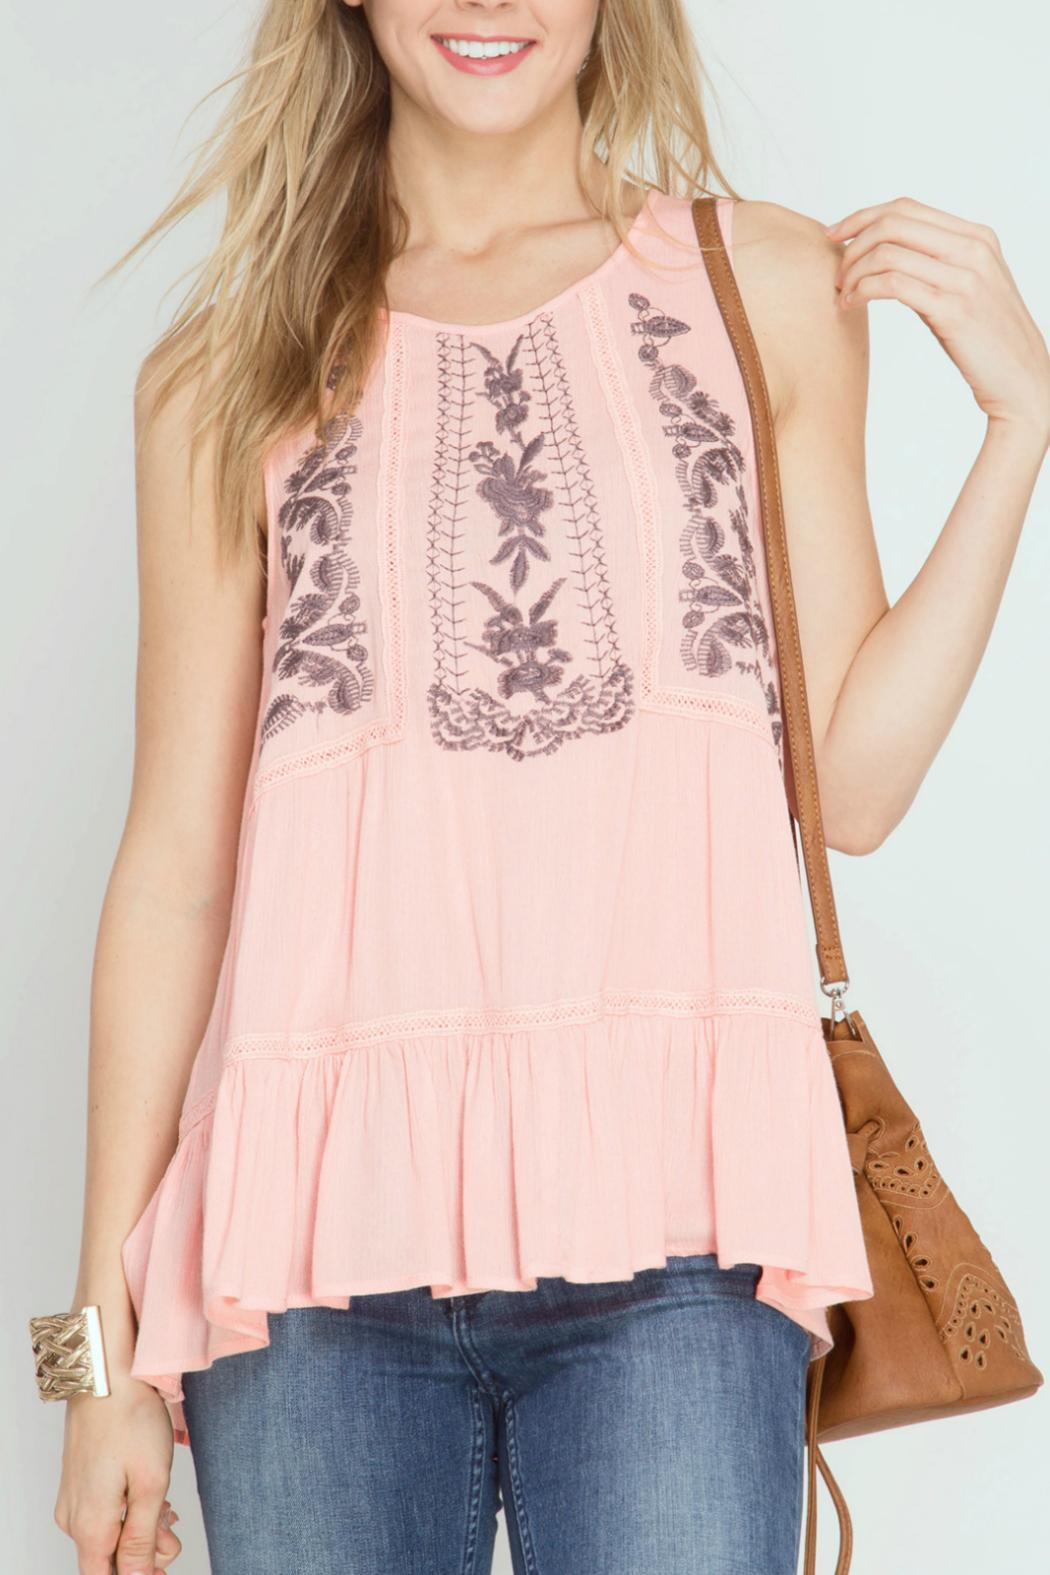 She + Sky Floral Embroidered Top - Main Image